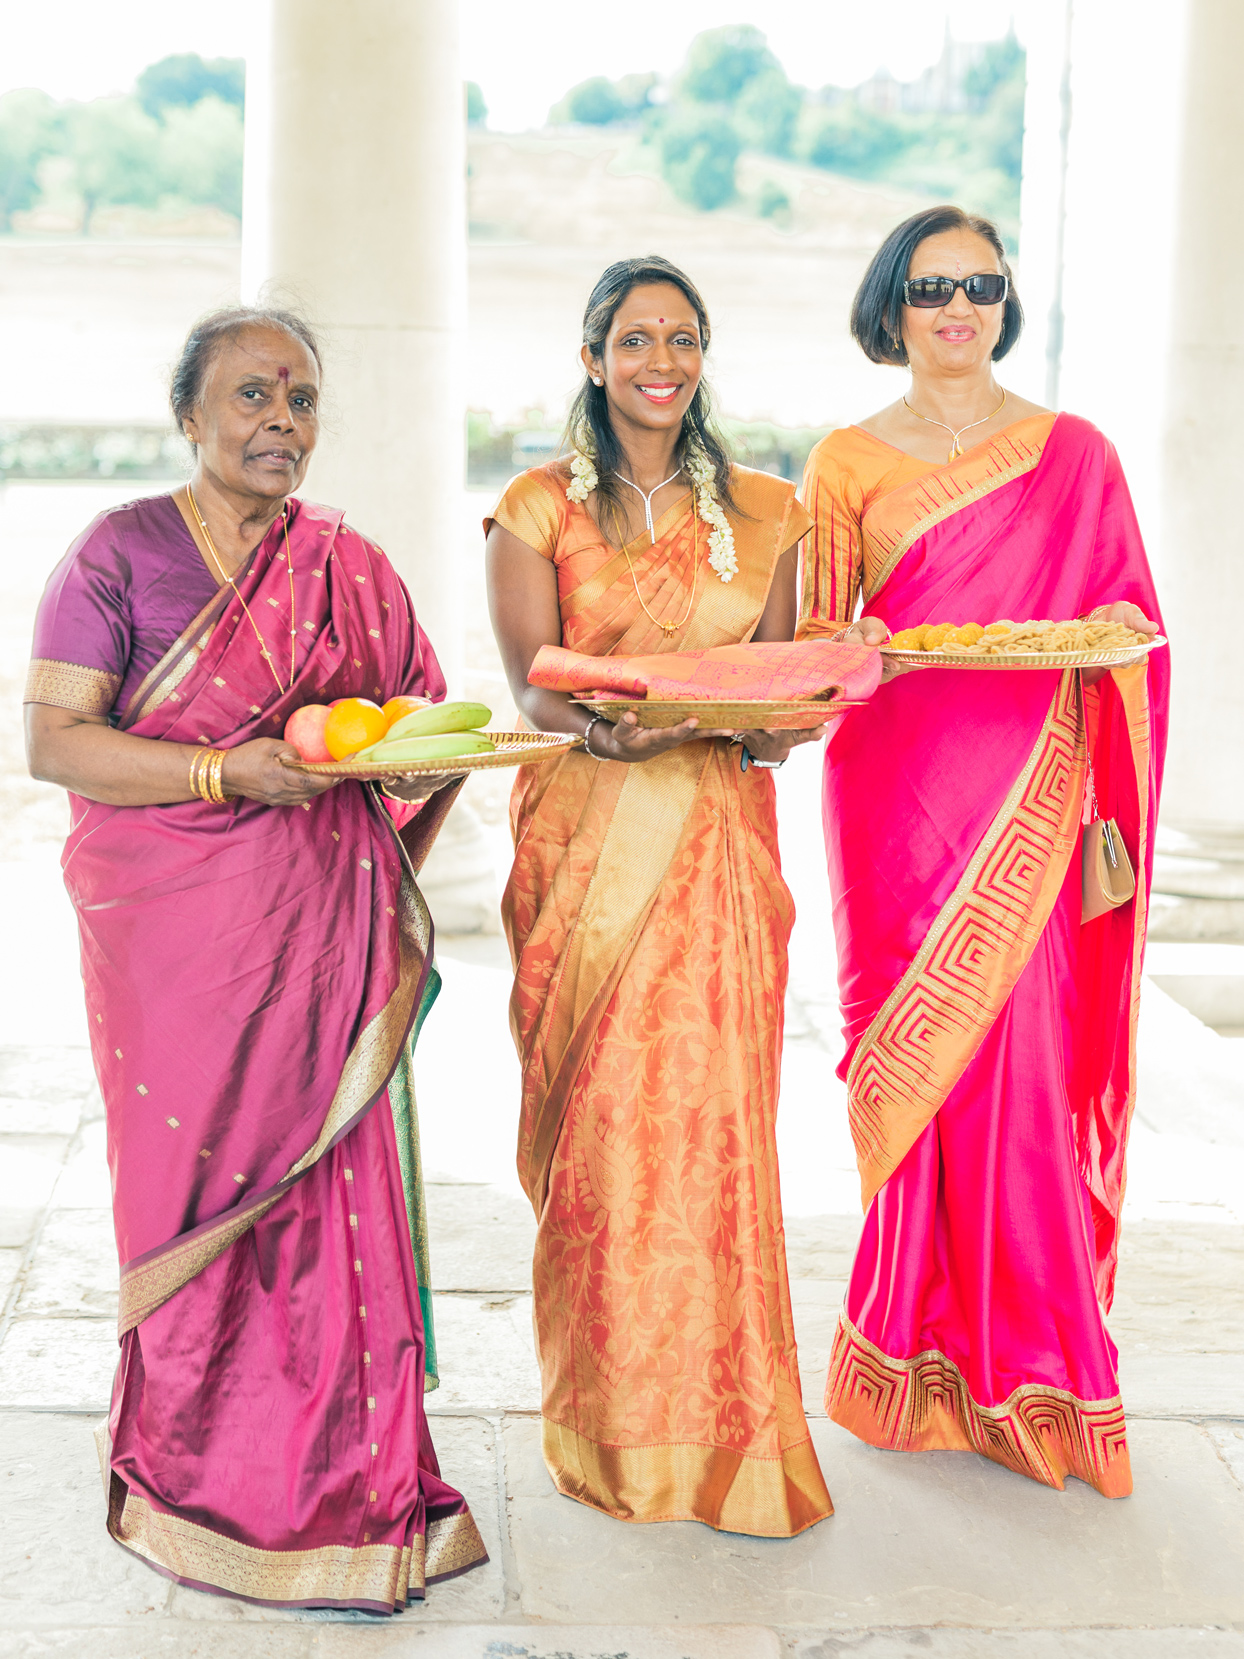 maid of honor and family wearing colorful saris